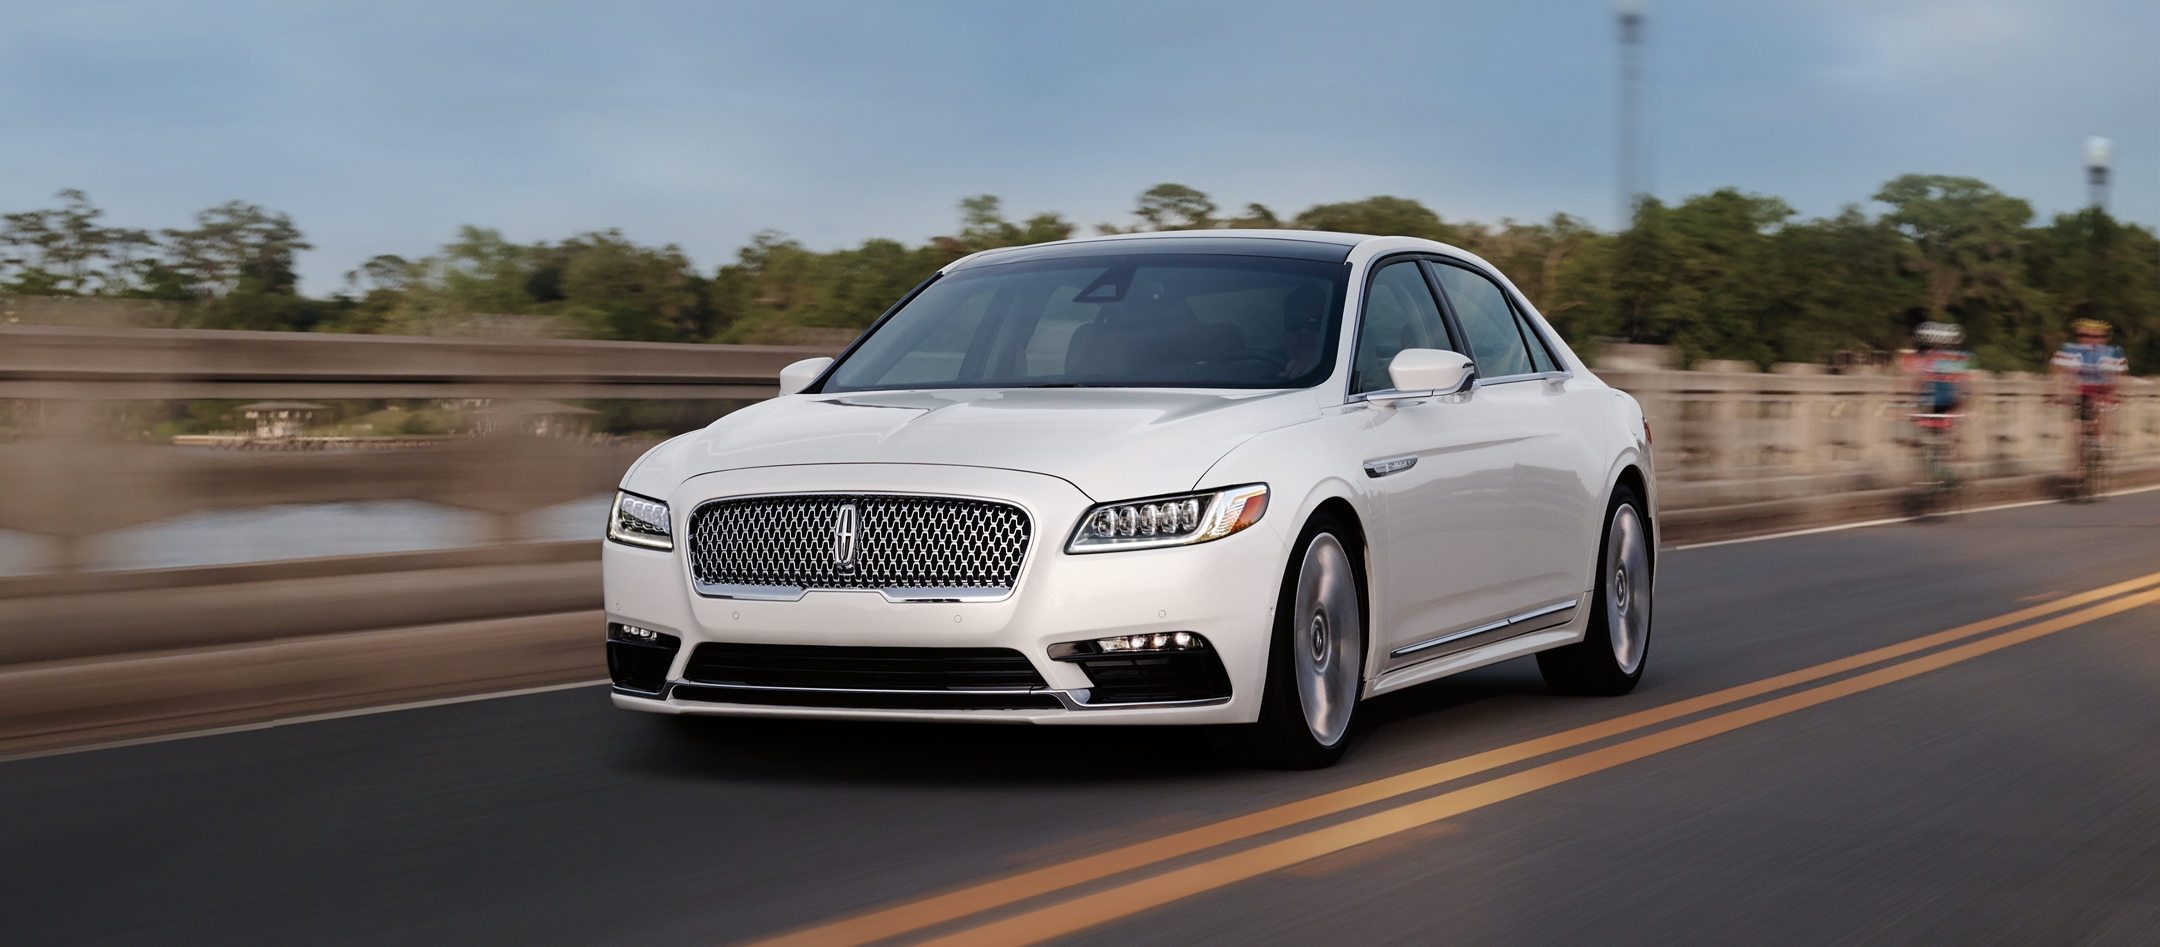 2019 Lincoln Continental Car Technology Features - Lincoln.com